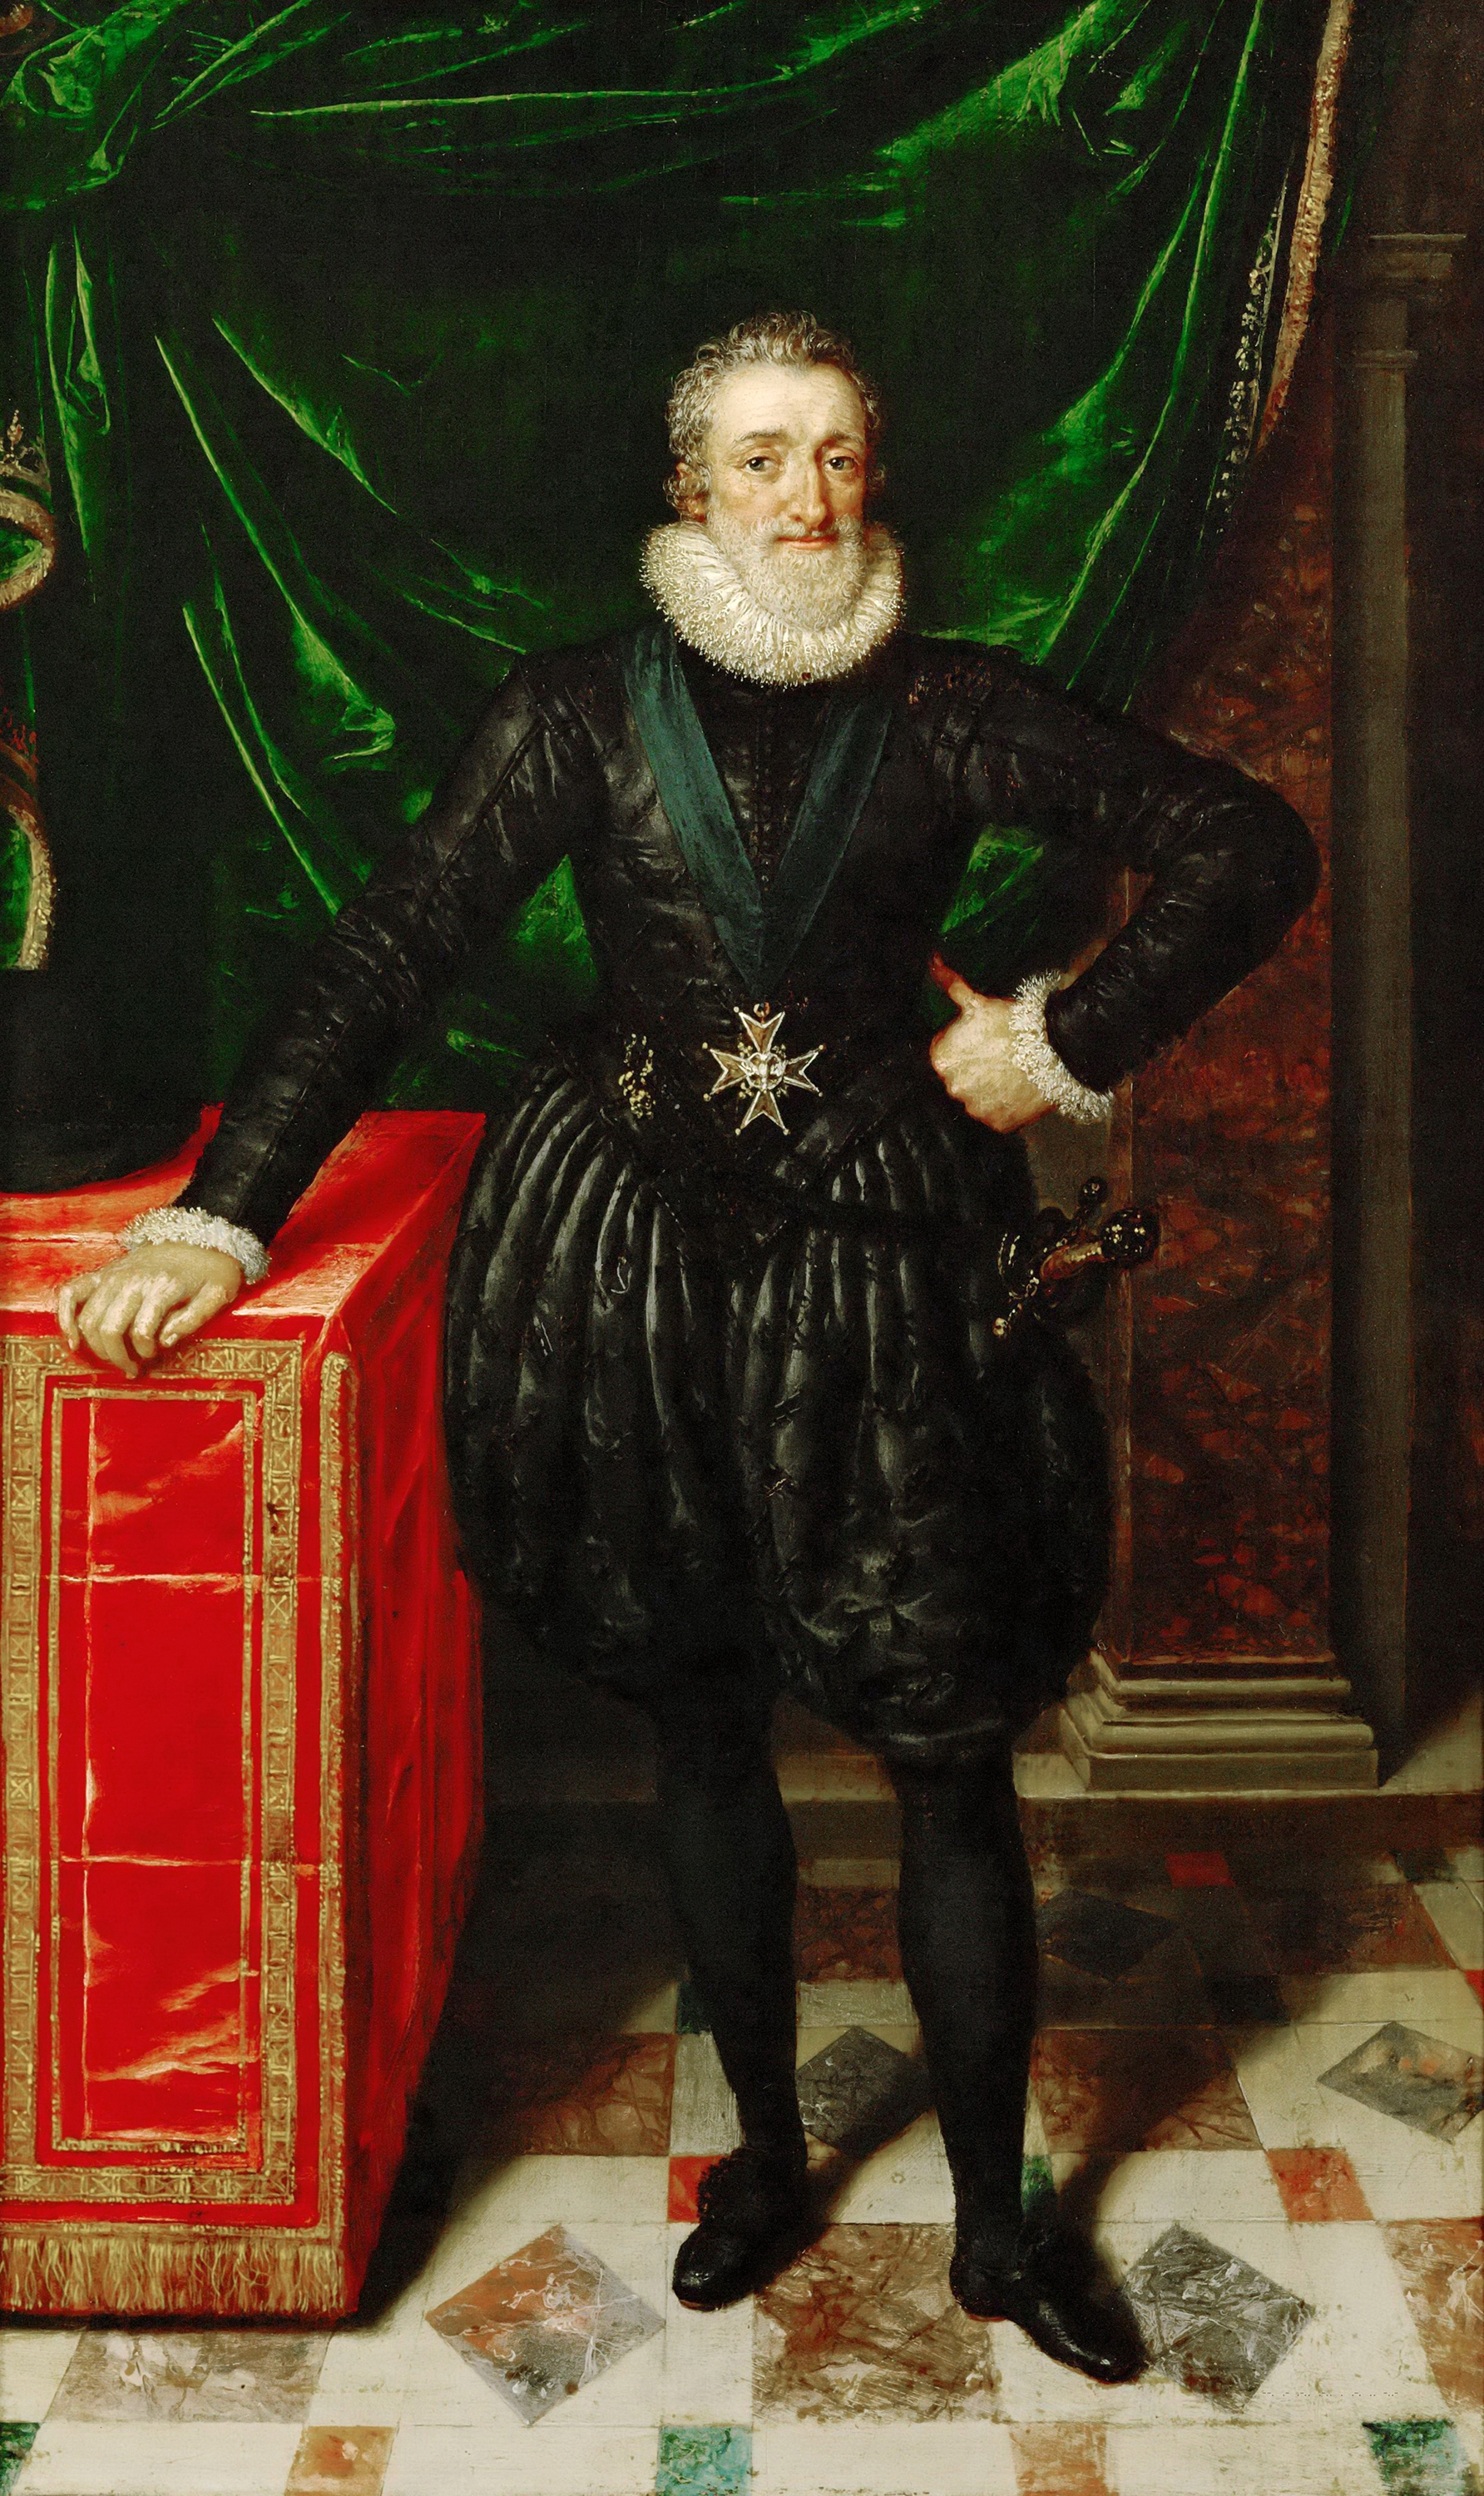 Portrait of Henry IV (1553-1610), King of France (1589-1610), King of Navarre (1572-1610), Duke of Vendôme (1562-1589), 1610 | Portraits of Kings